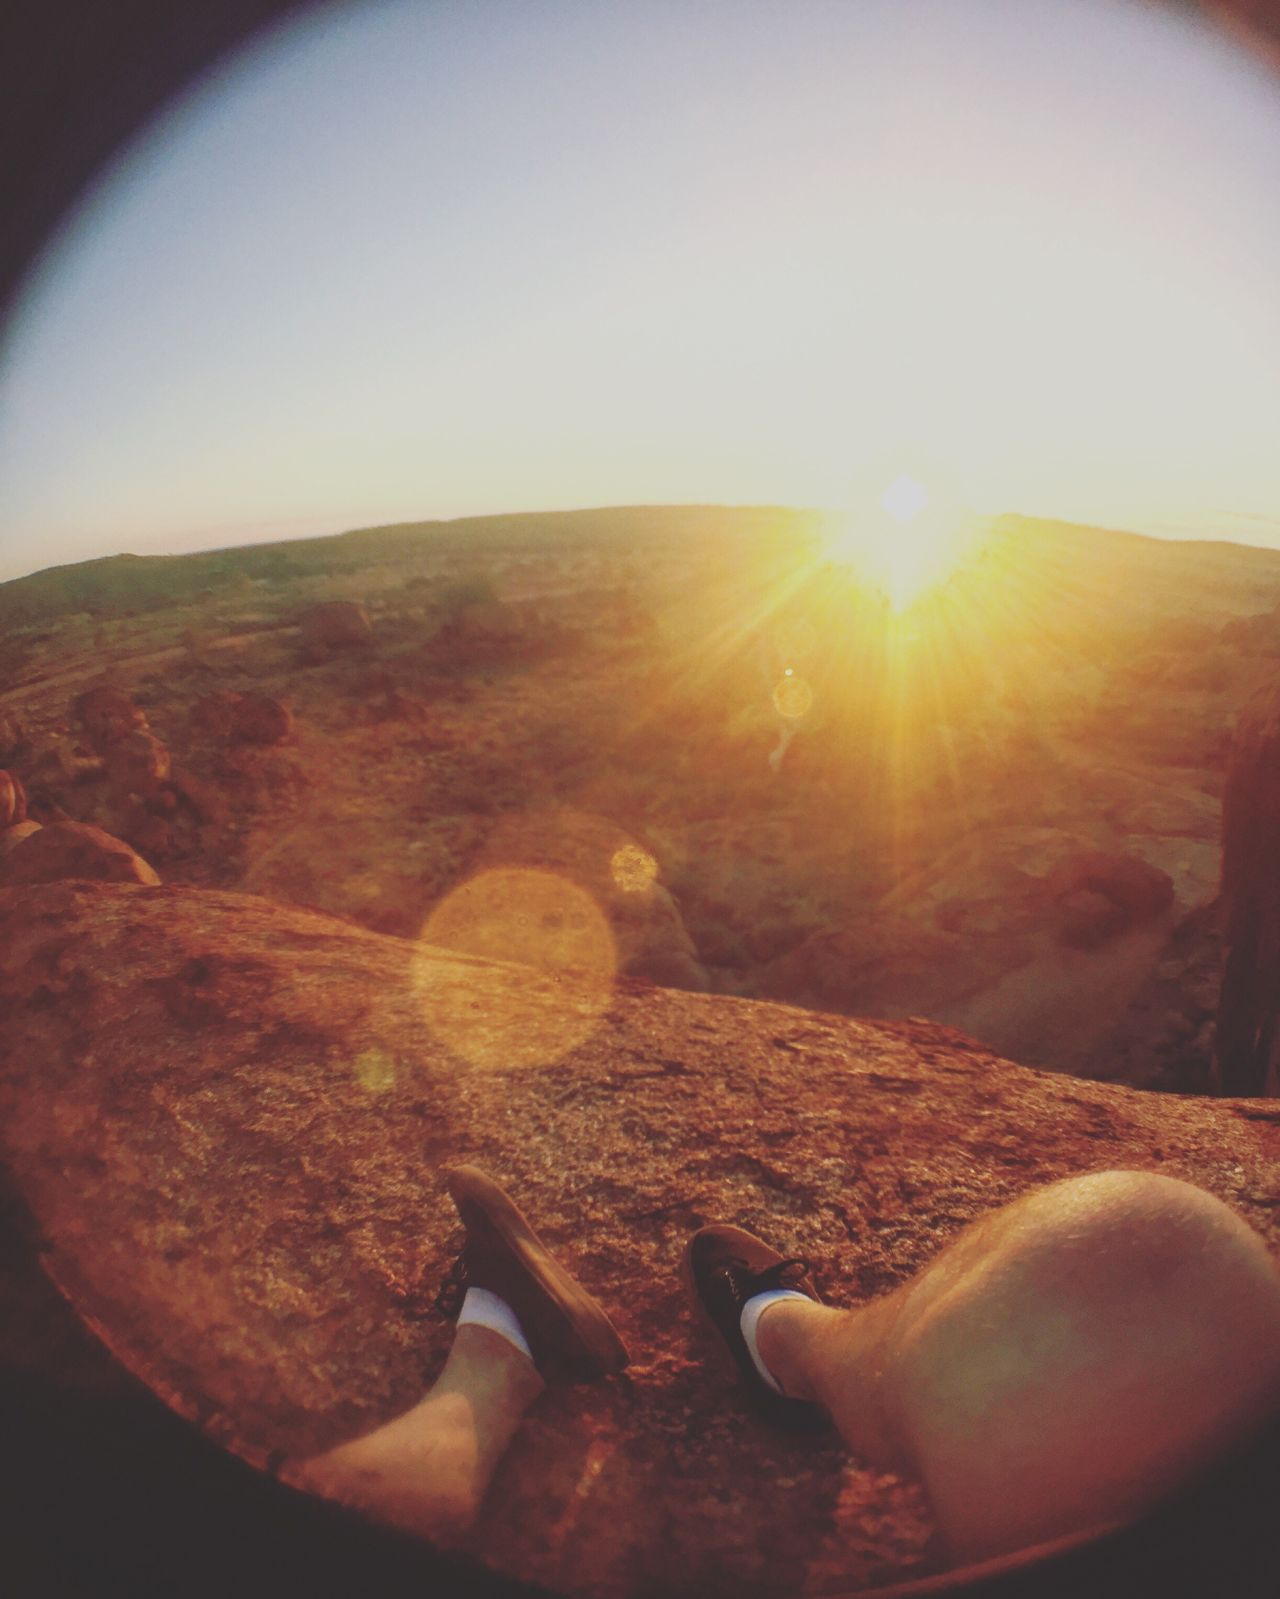 Never. Stop. Exploring. Lens Flare Sunlight Sun Sunbeam Sky Landscape Nature Real People Outdoors Beauty In Nature Scenics Day One Person Fish-eye Lens Human Hand EyeEmNewHere Canon Photographer Photography Austraila Northern Territory